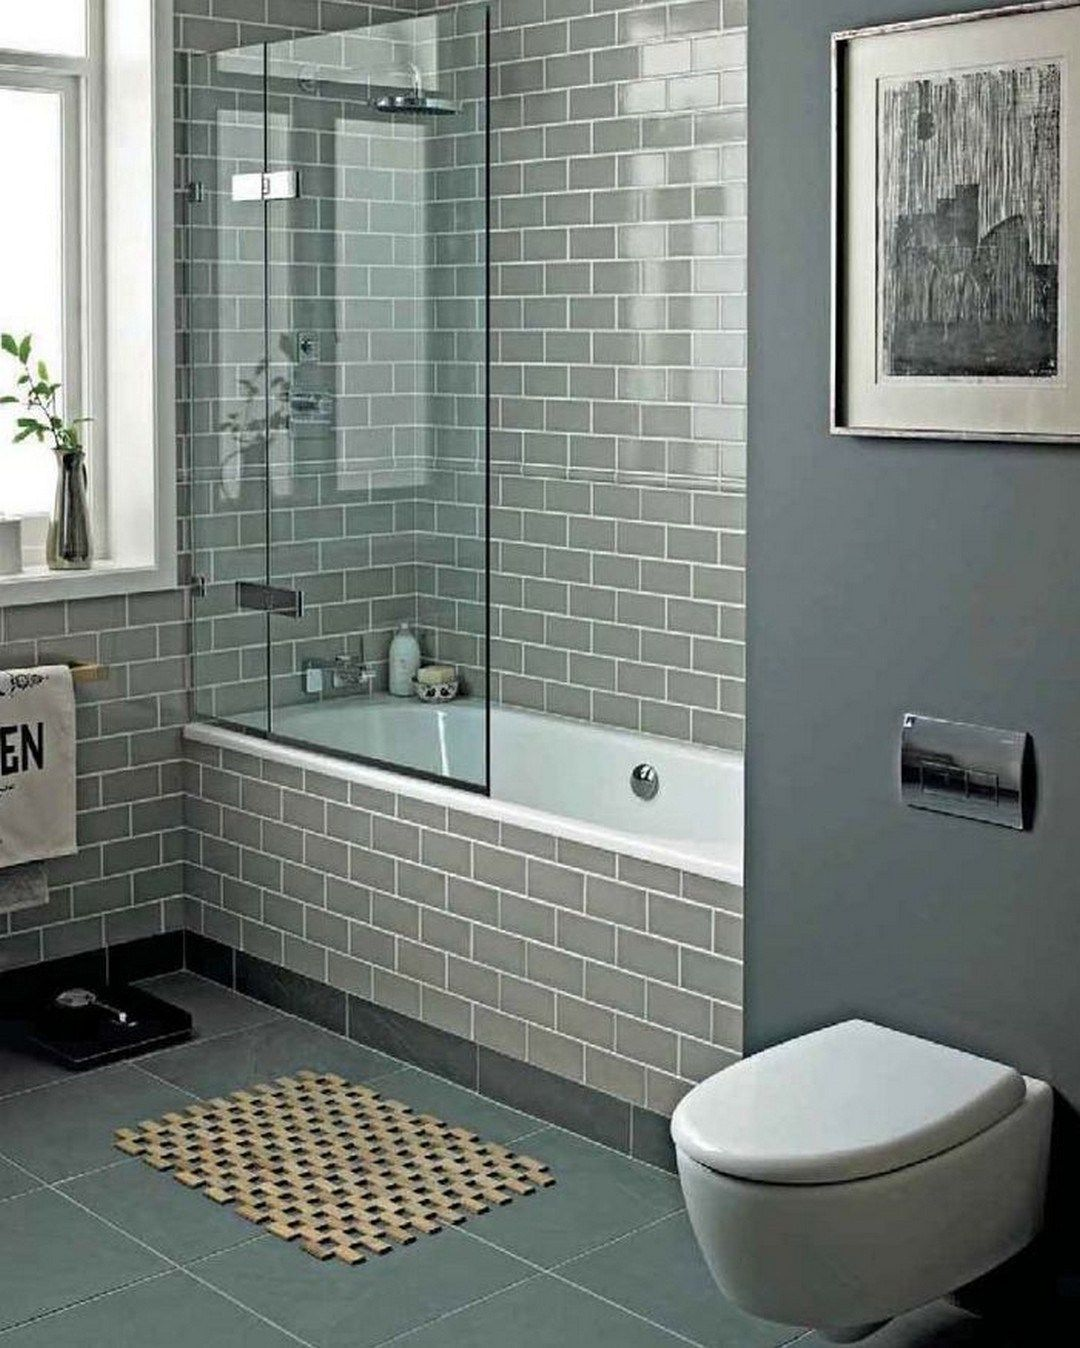 Unique Small Bathroom with Tub Remodel Ideas